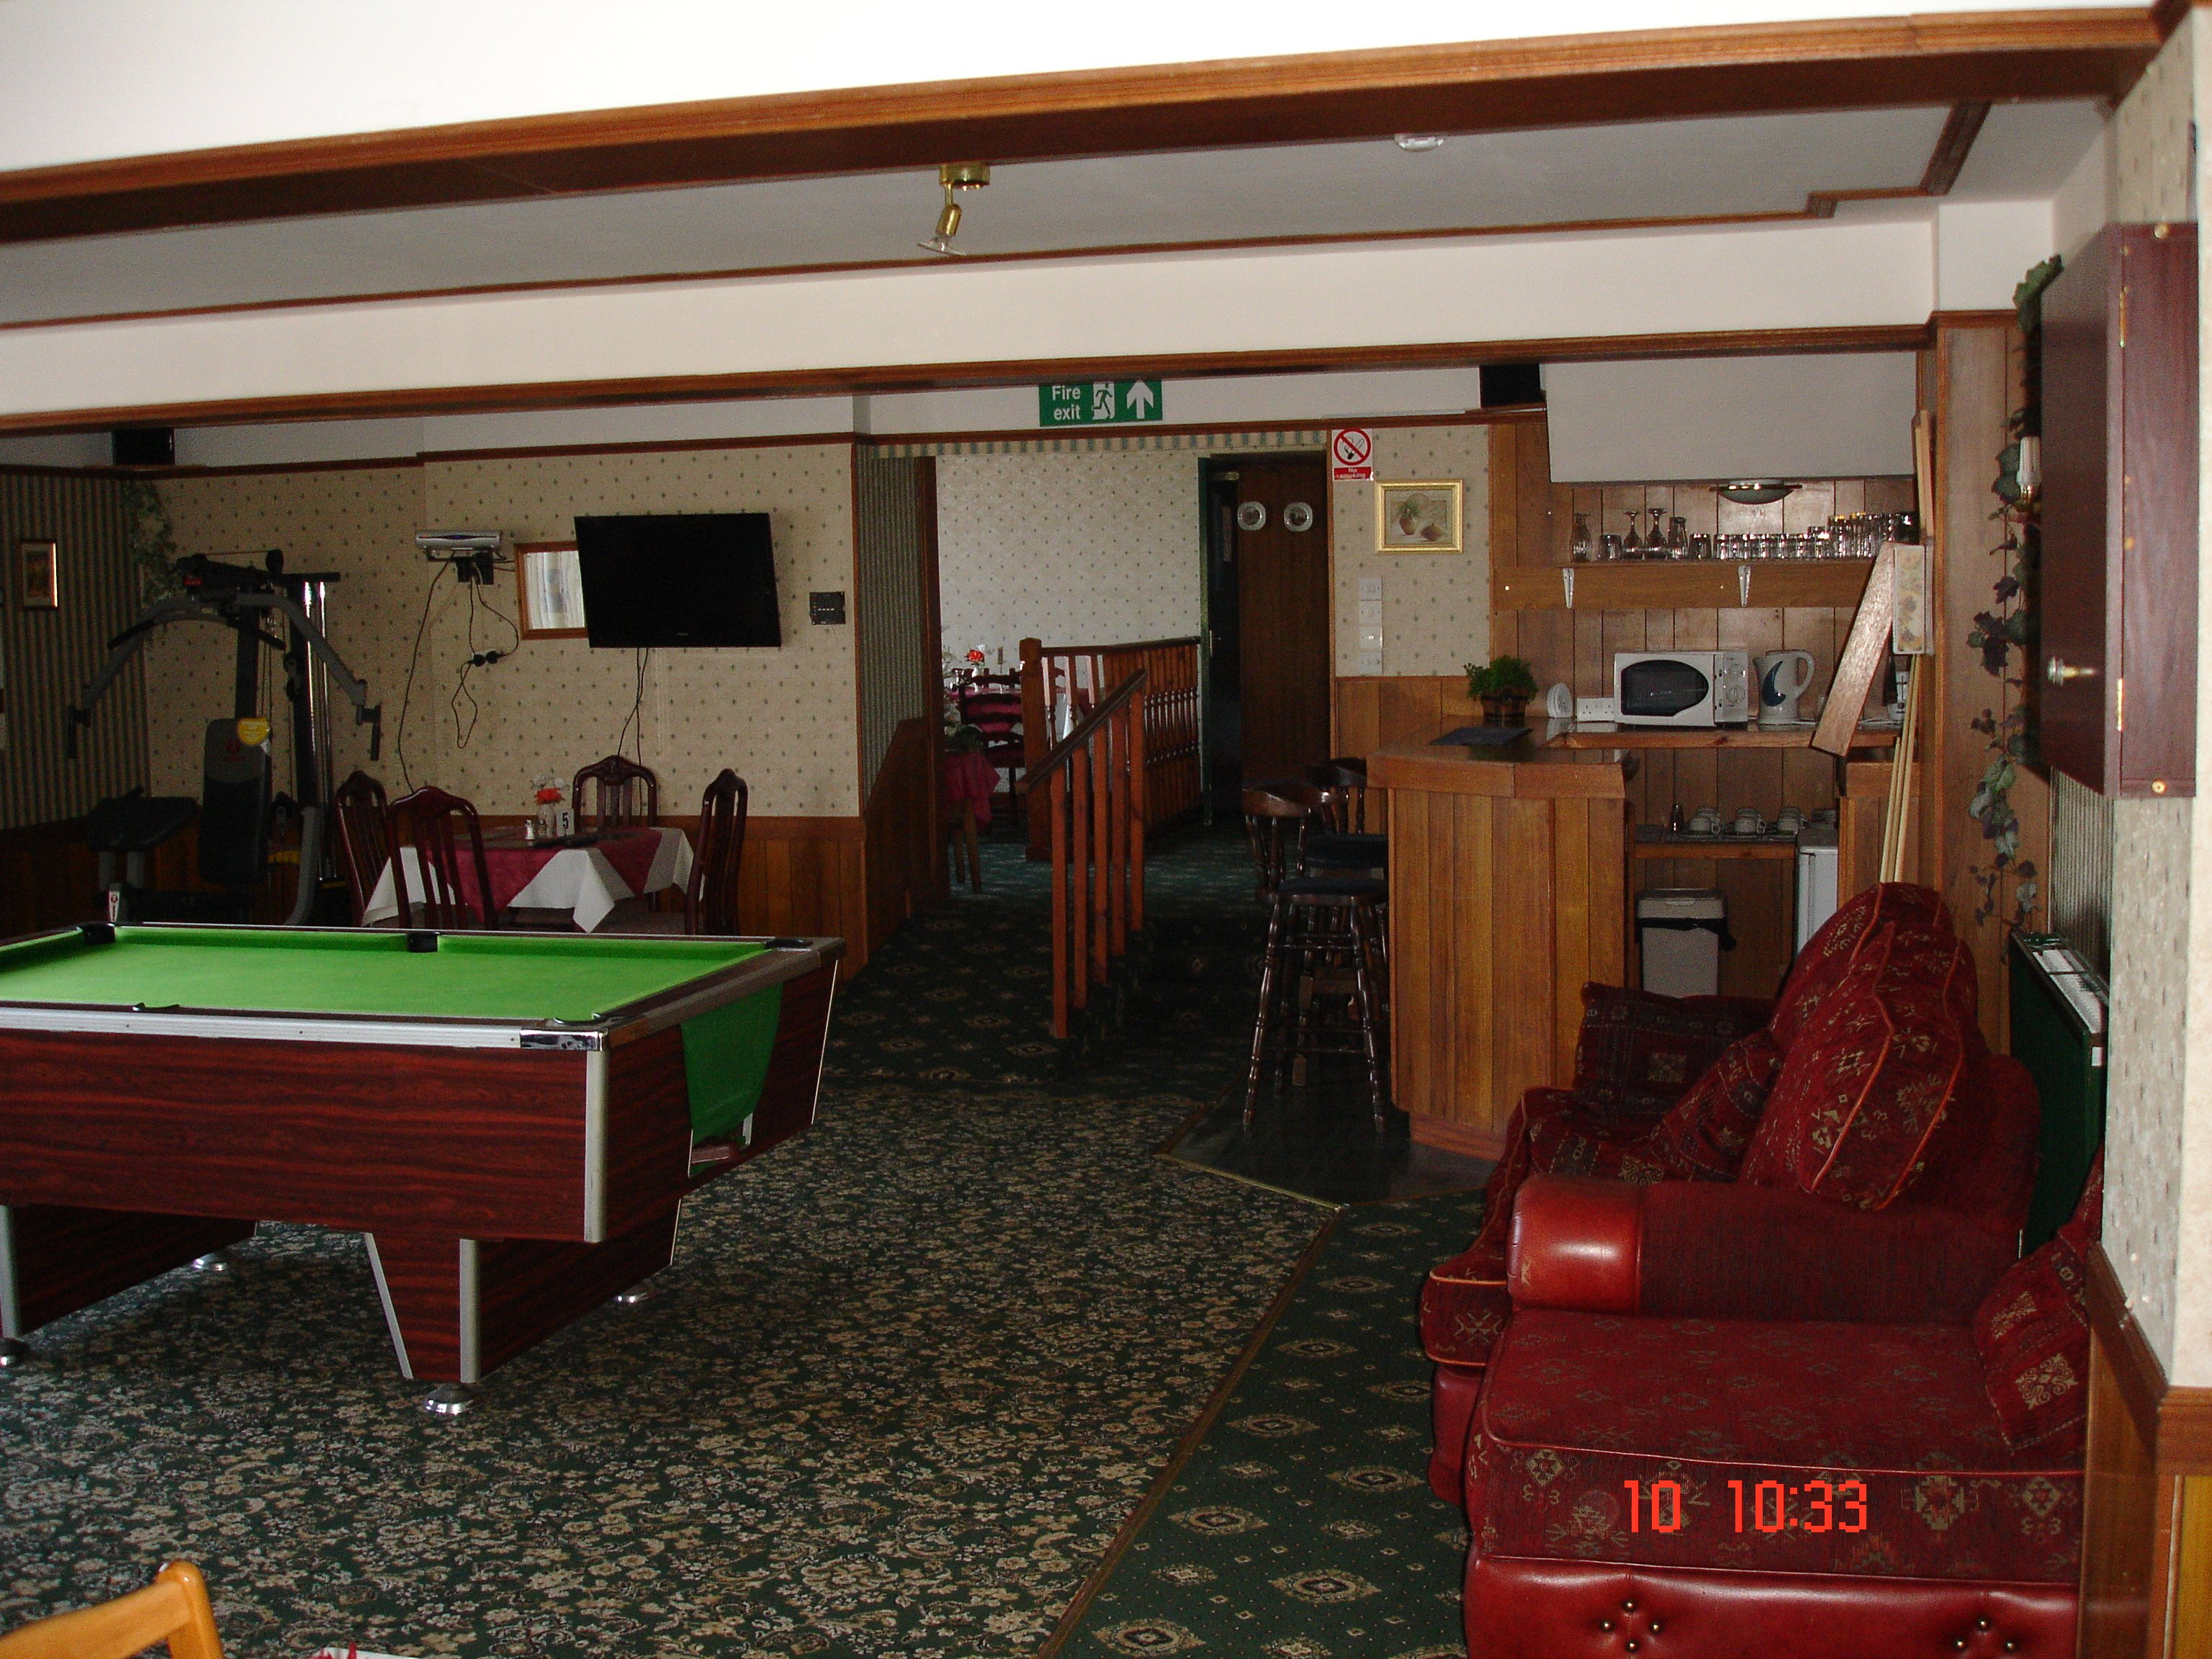 large room with a muscles machine and a pool table in the middle